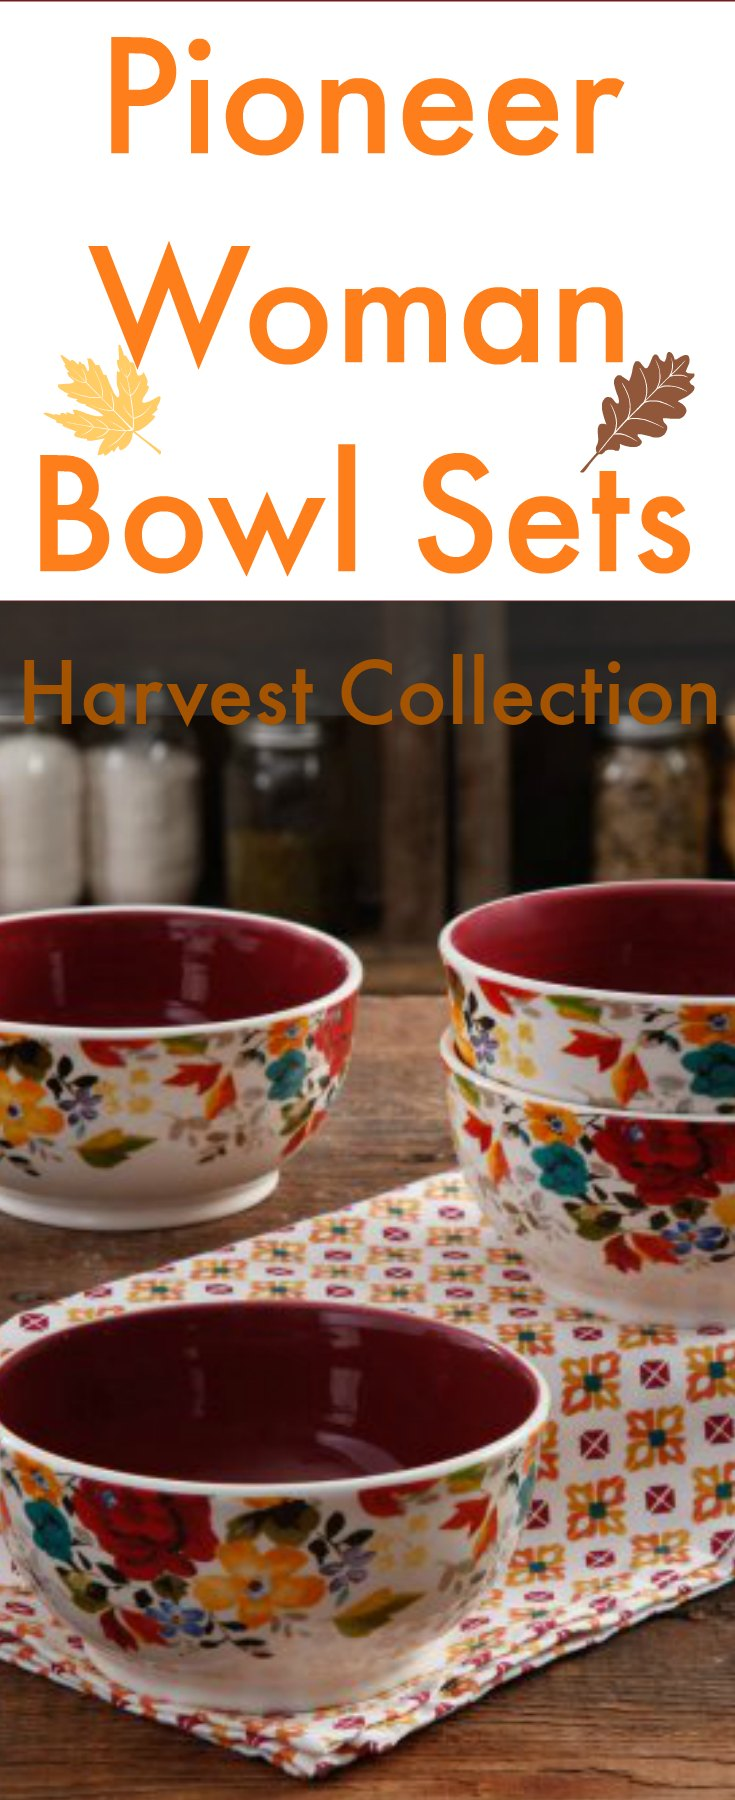 The Pioneer Woman Bowl Set